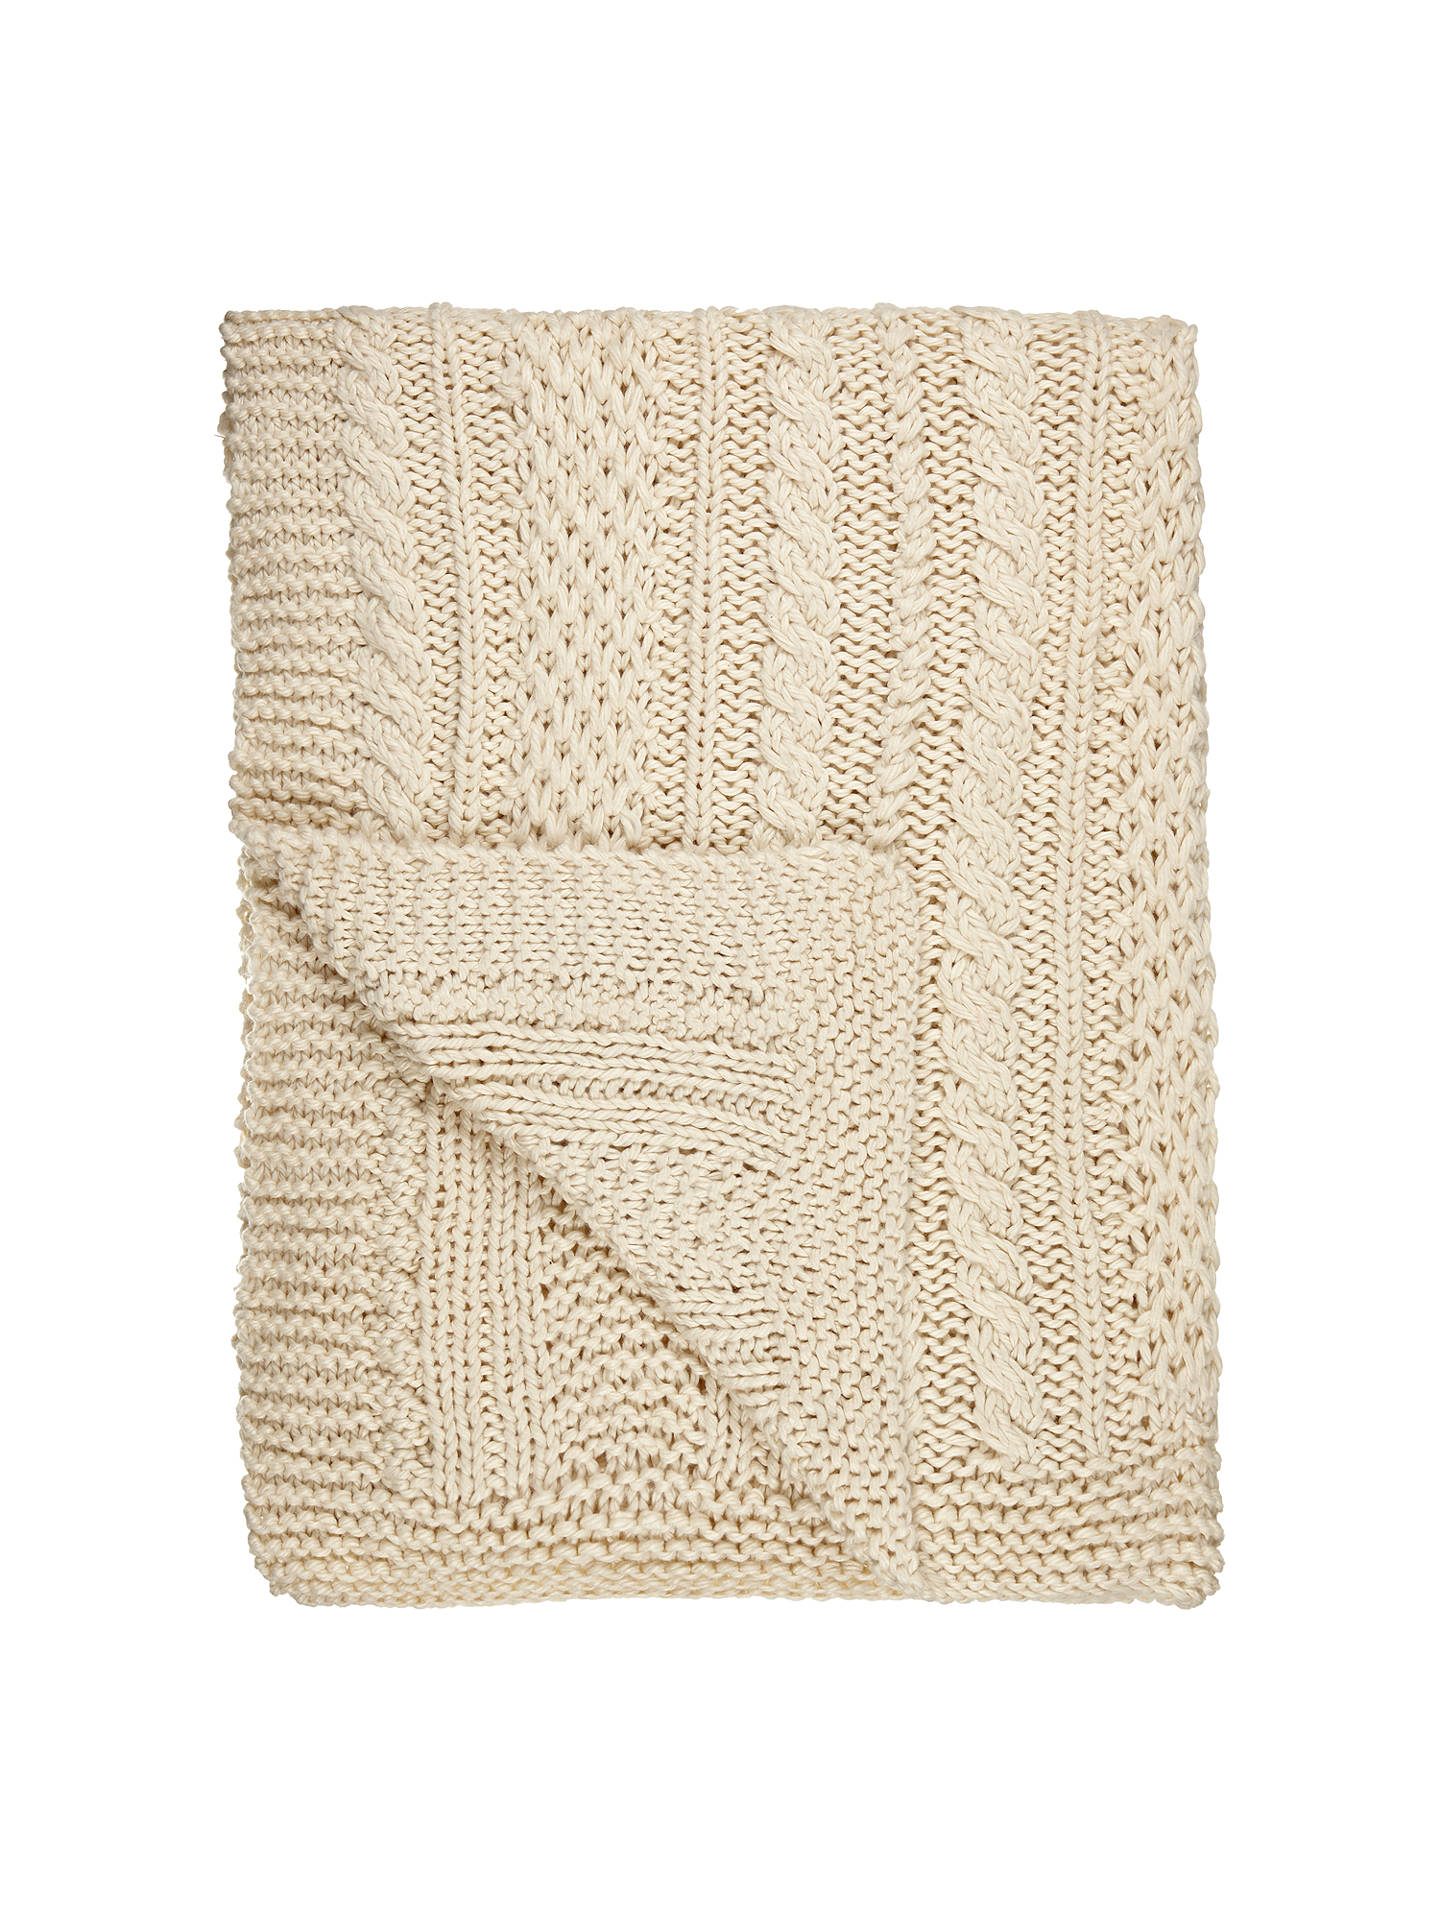 BuyJohn Lewis & Partners Chunky Knit Throw, Natural Online at johnlewis.com